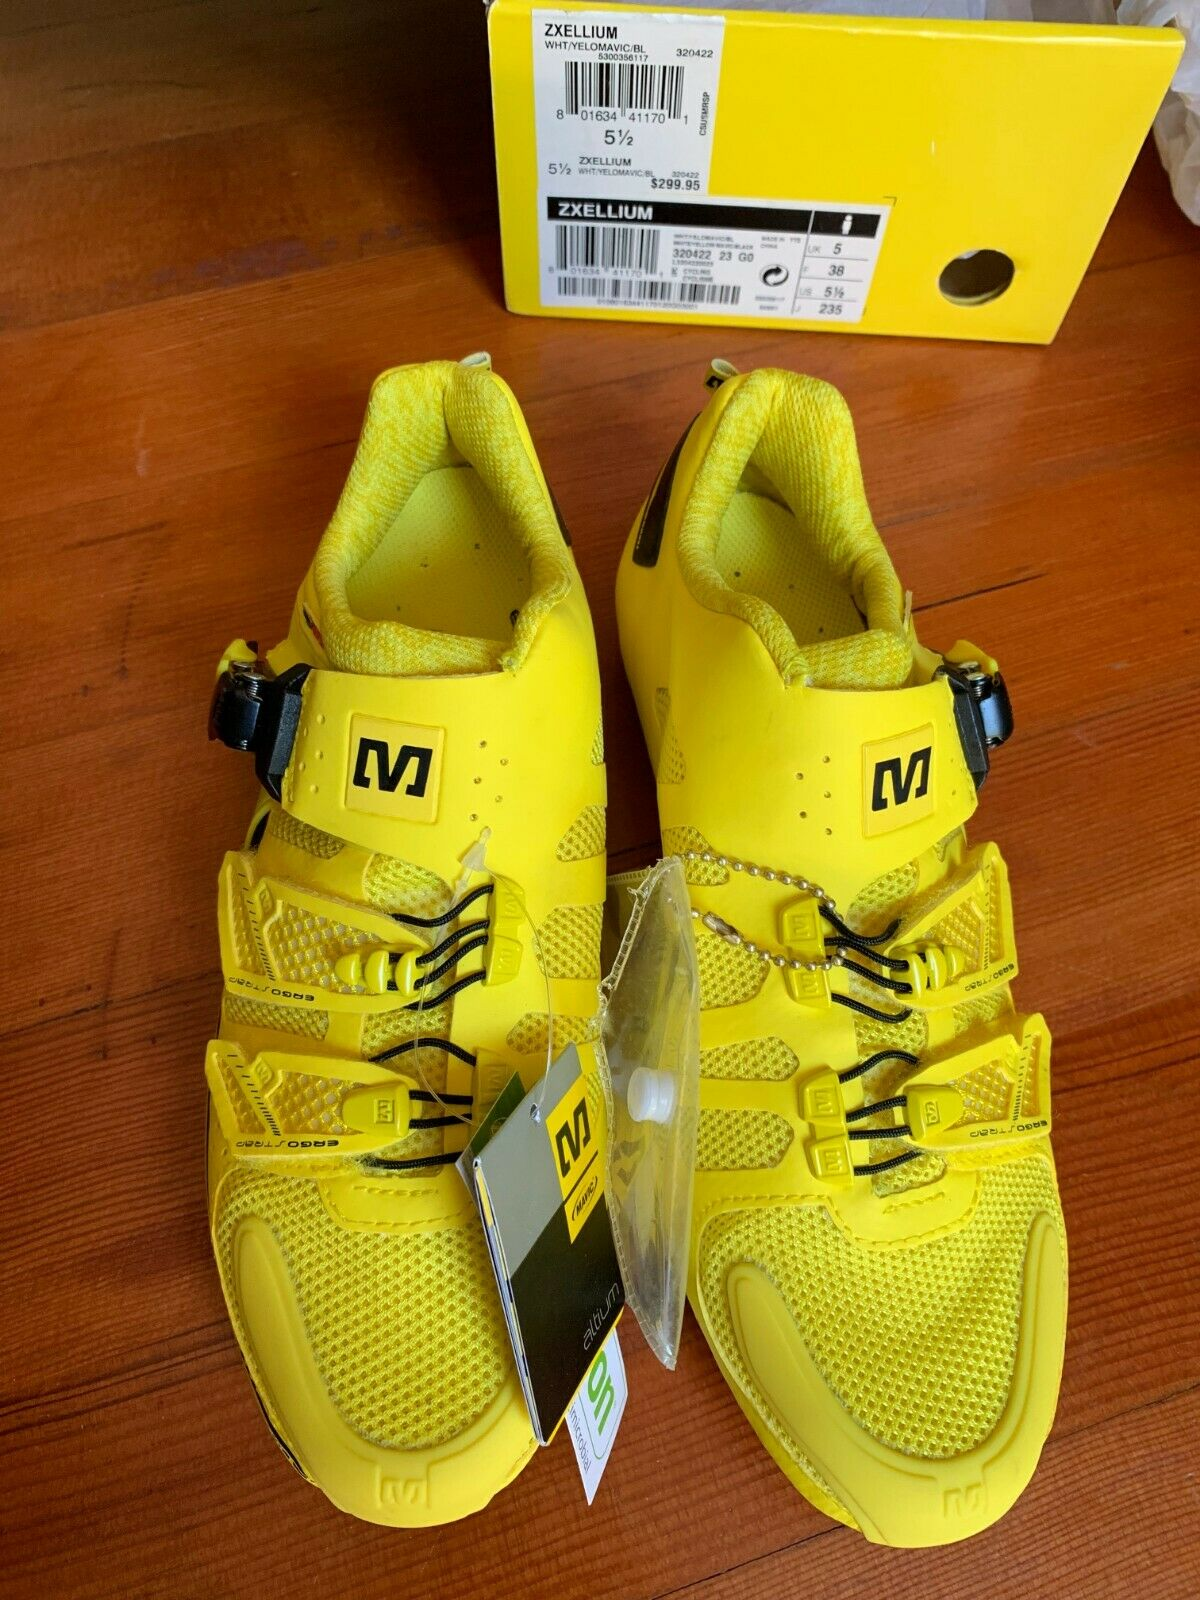 Mavic Zxellium Road Shoes - Yellow - New In Box - size 5.5 - Euro 38